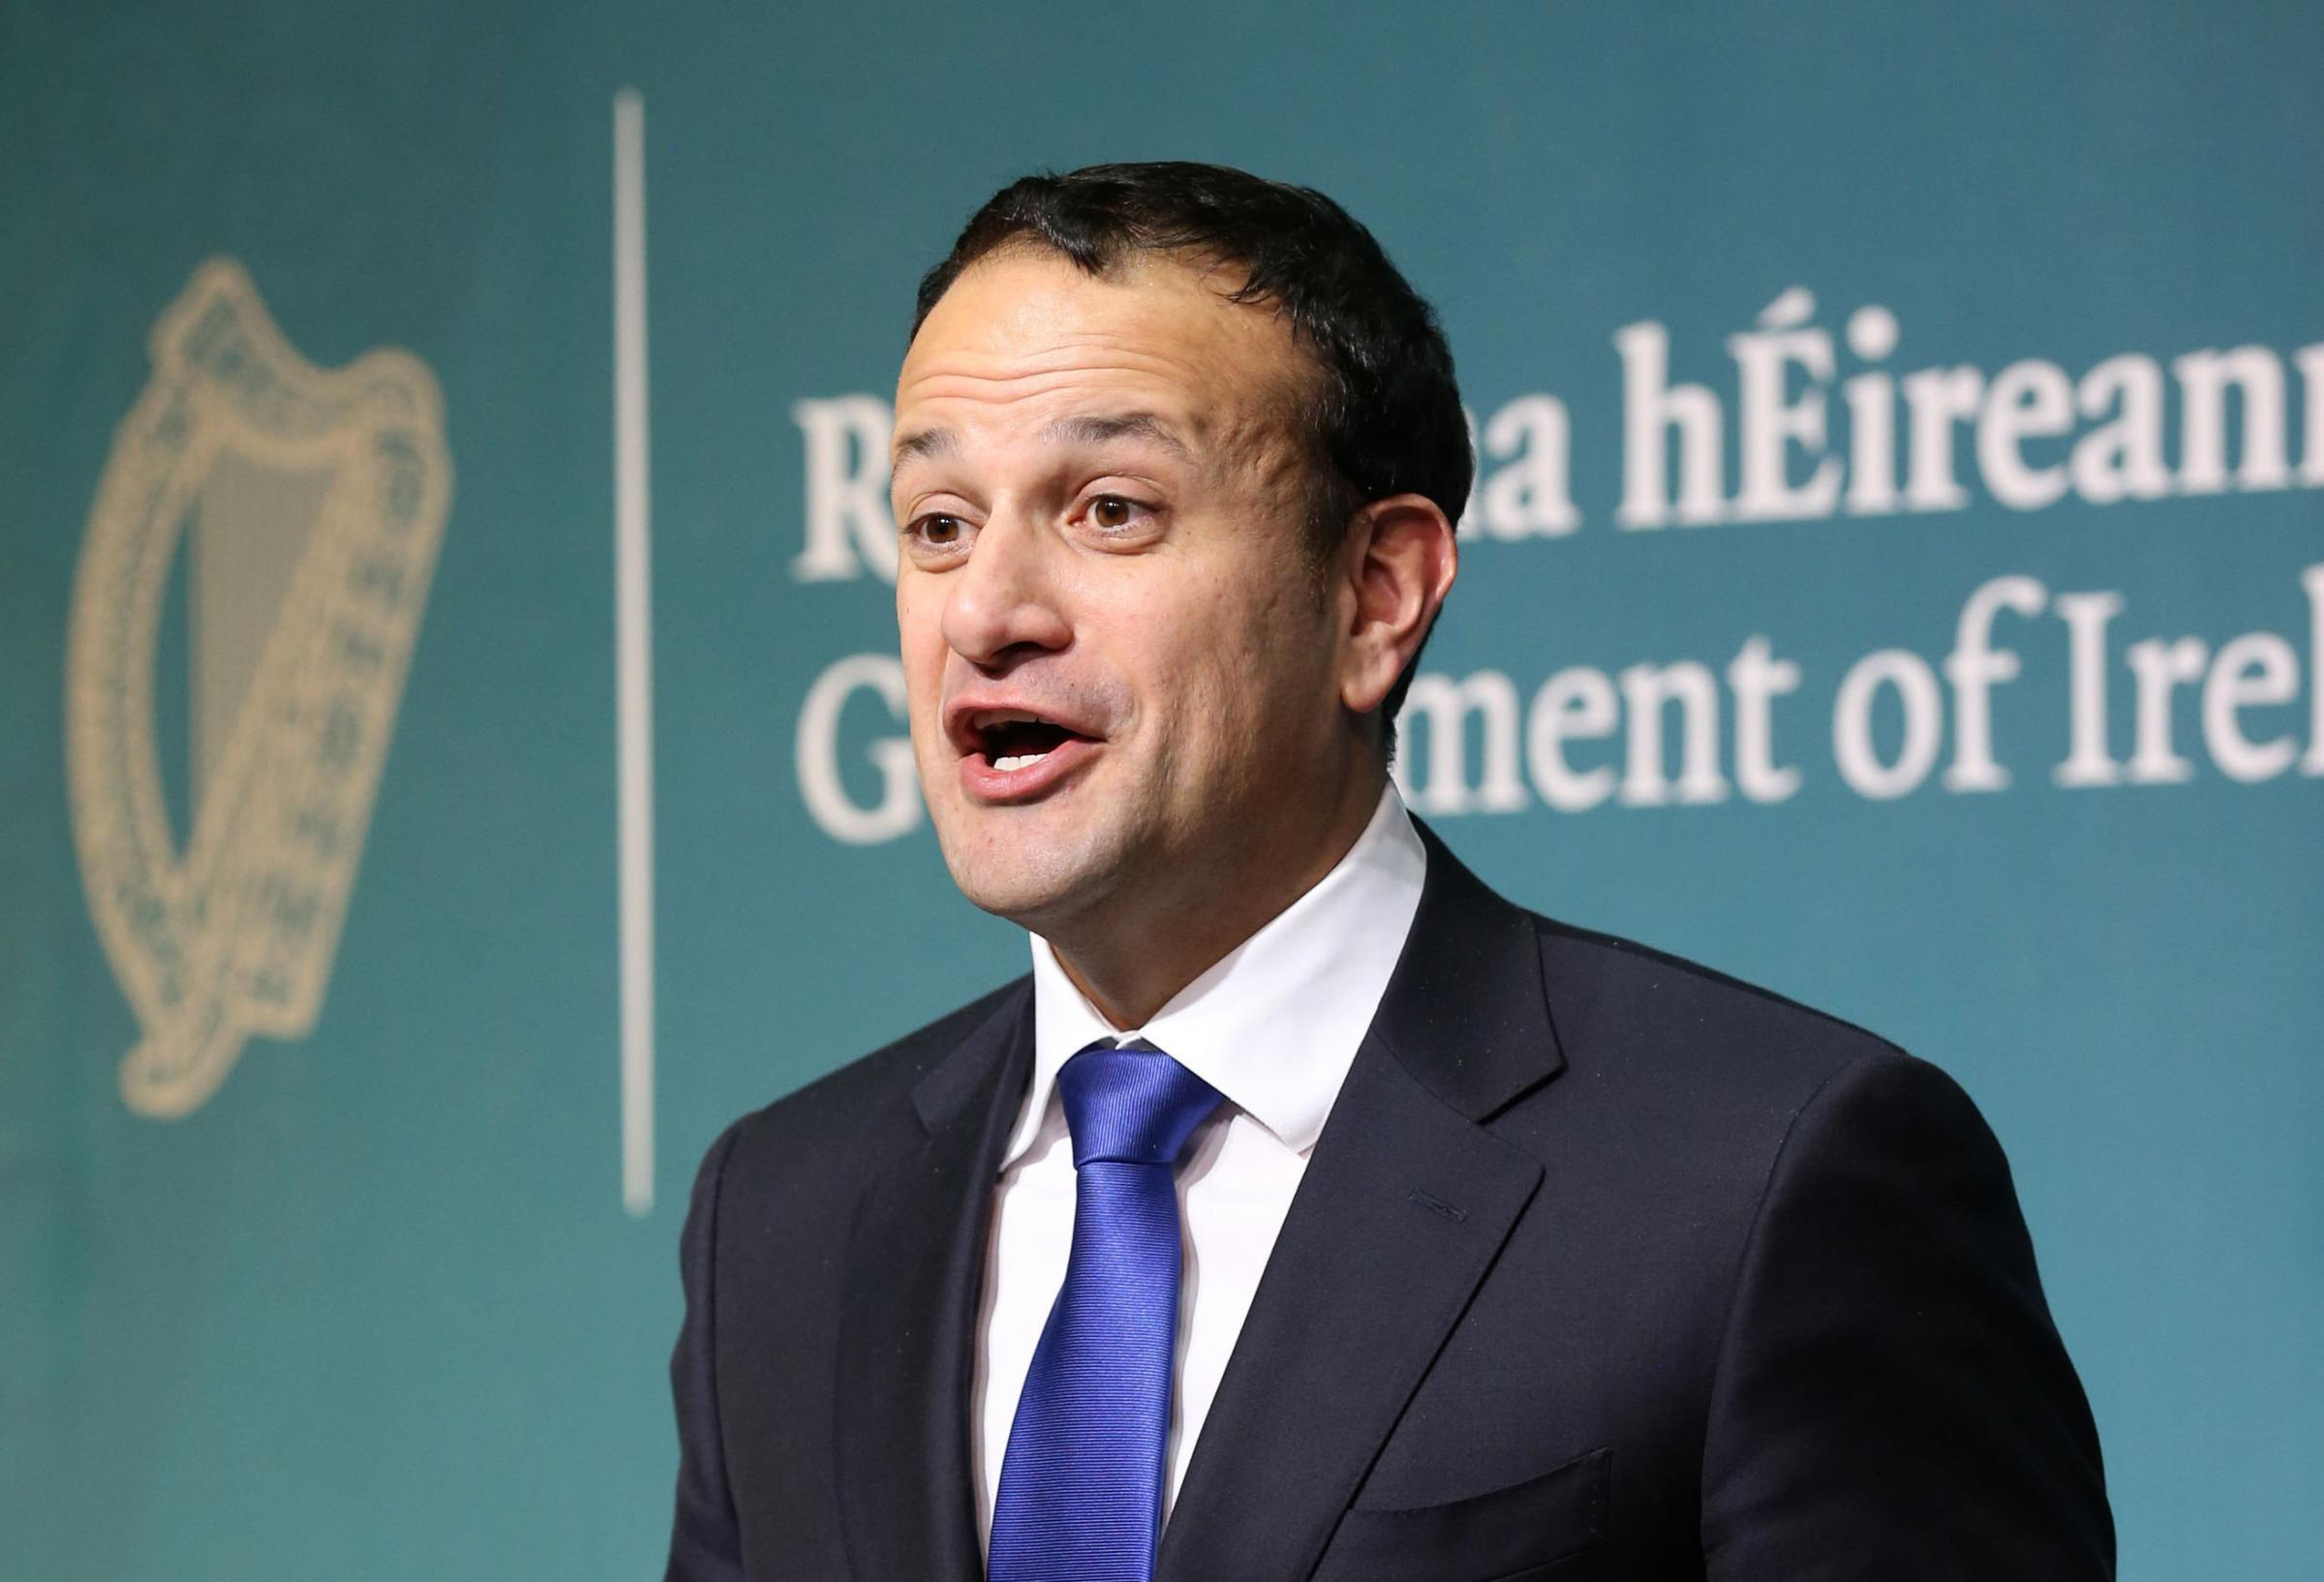 Irish Taoiseach Leo Varadkar has supported Theresa May's preferred option of a 'customs partnership'